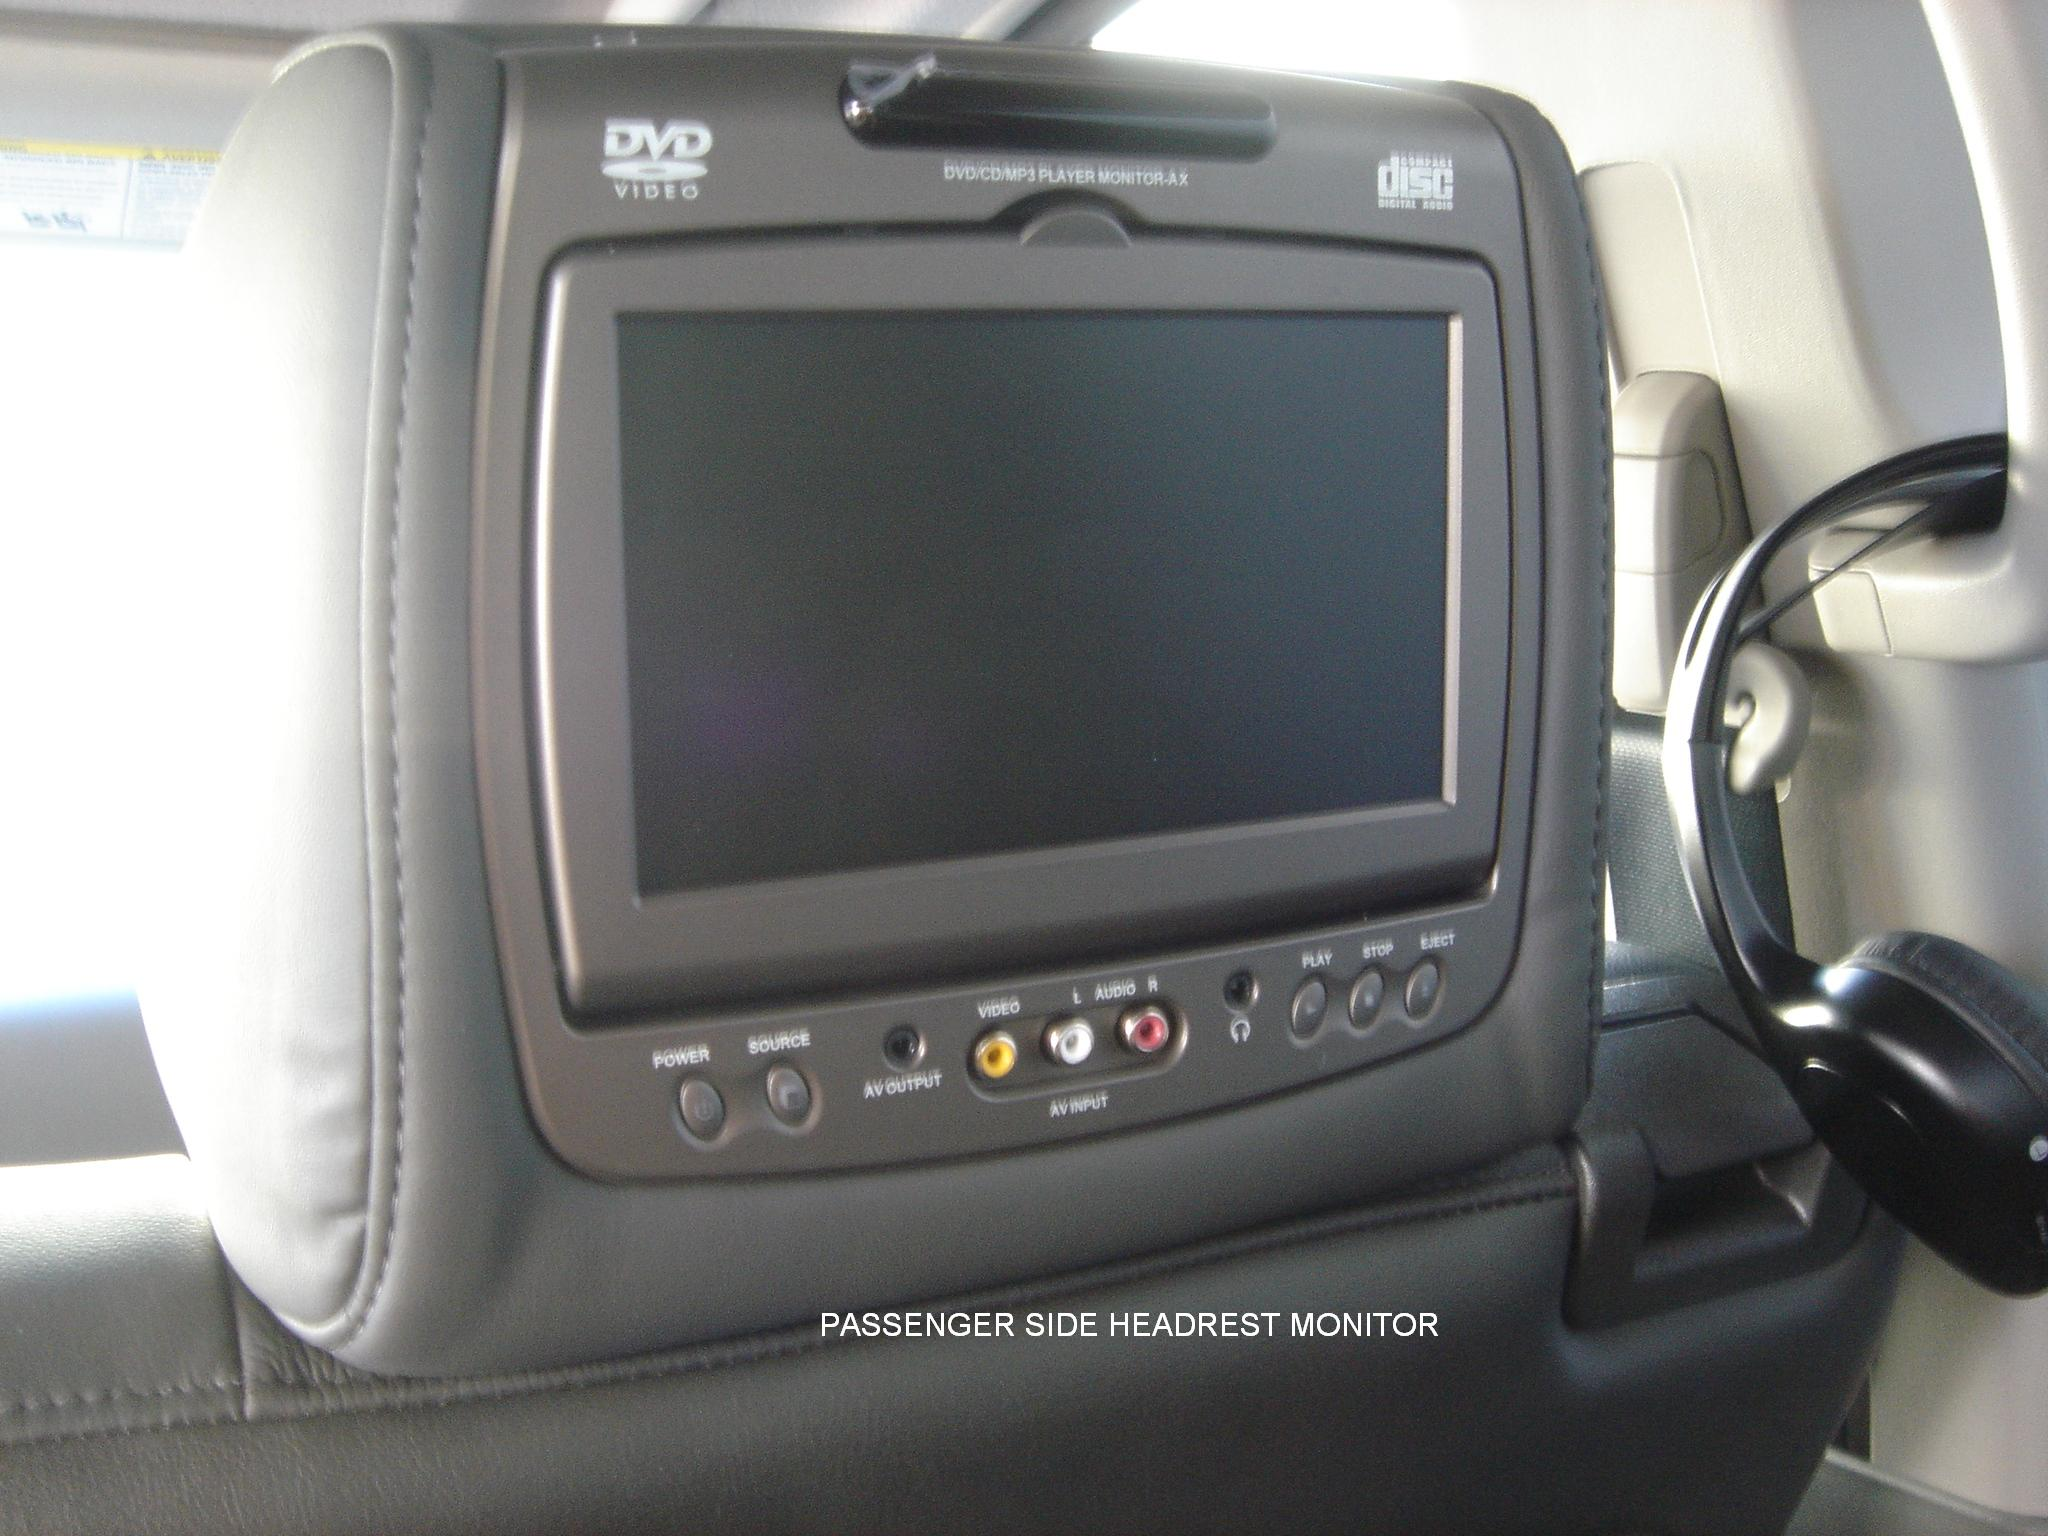 Wiring Diagram For Headrest Monitors Page 2 And Factory Diagrams Dvd Pictures Kia Full Selection Of Replacement Rh Transejecutivodelllano Com Automotive Car Subwoofer